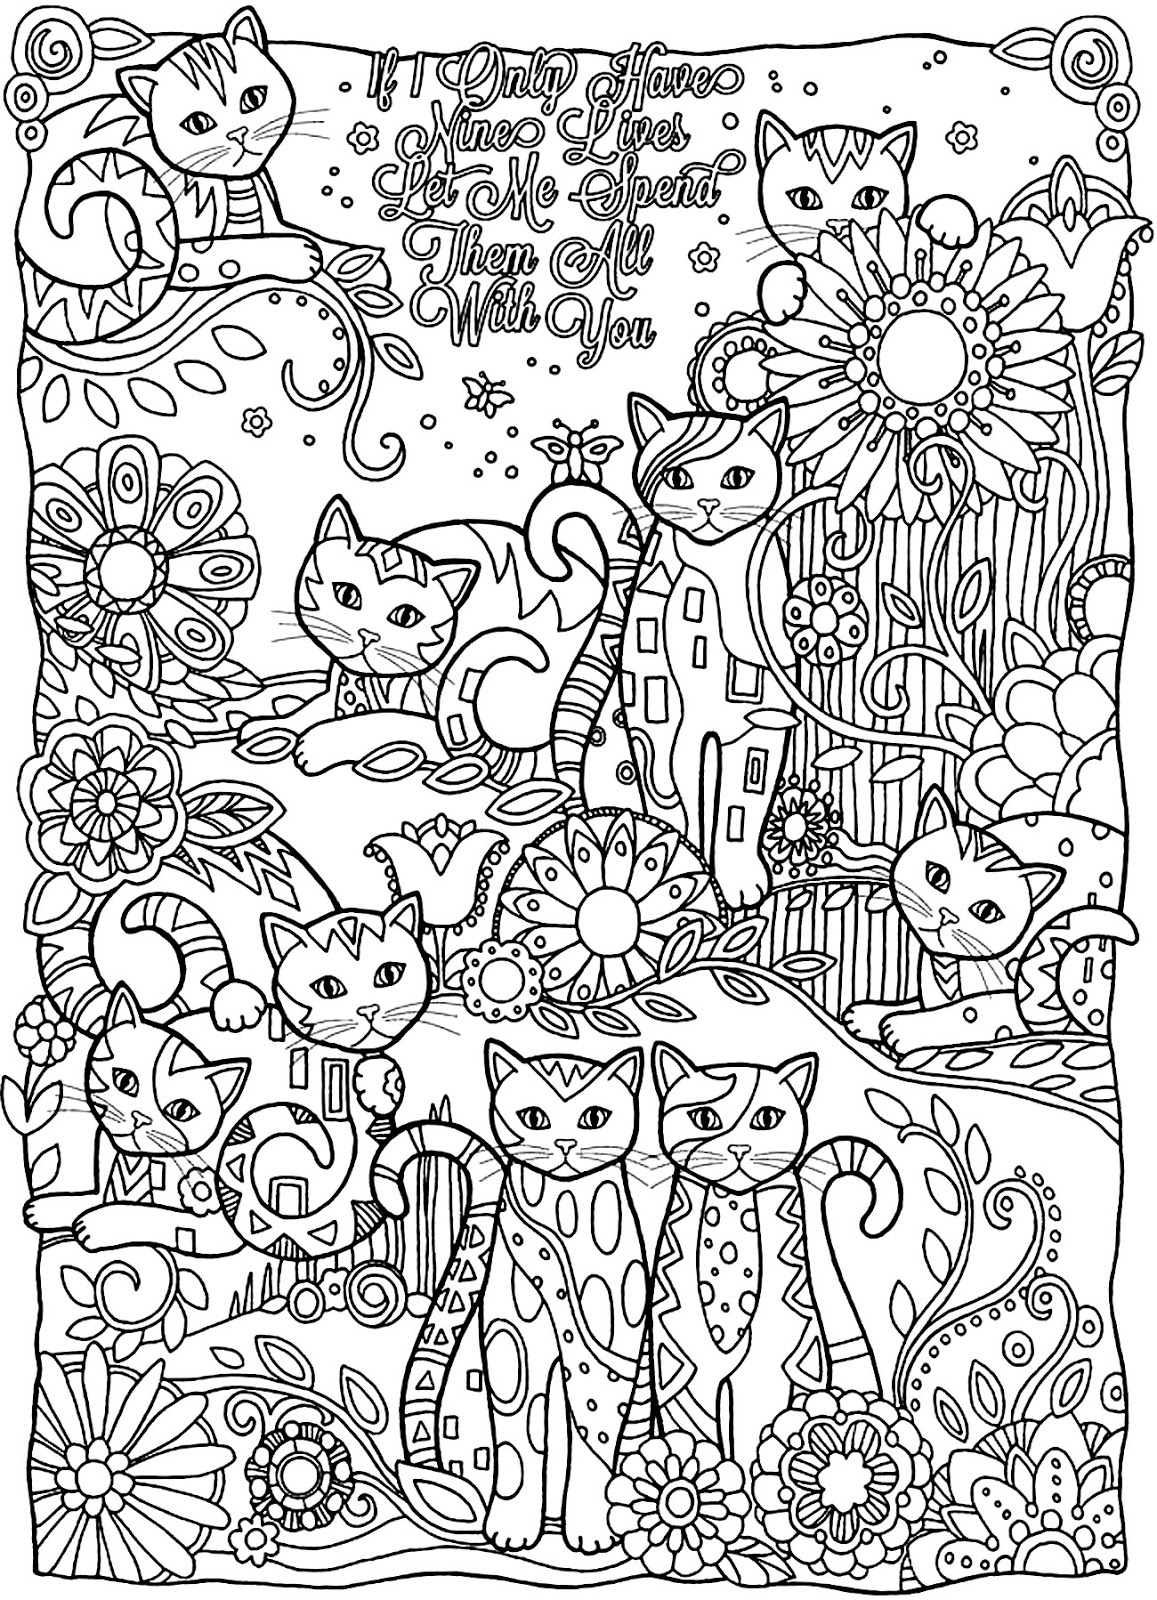 Hamilton Musical Coloring Pages  Download 11j - To print for your project